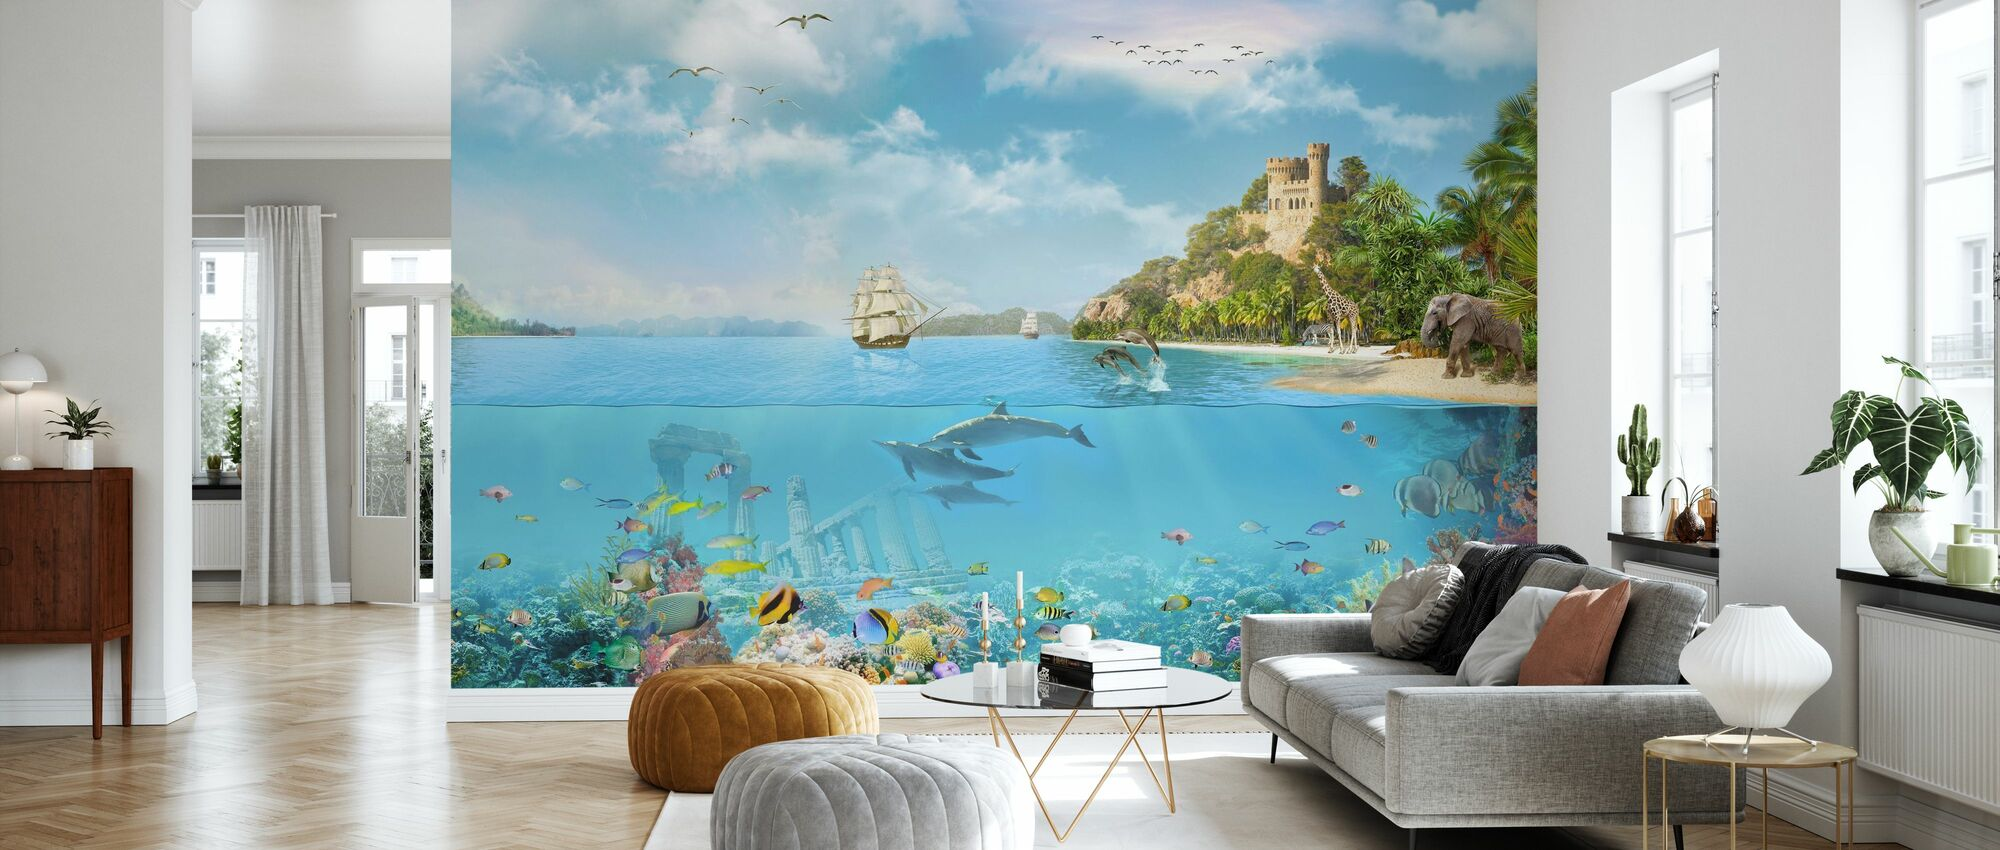 Navy Paradise - Wallpaper - Living Room